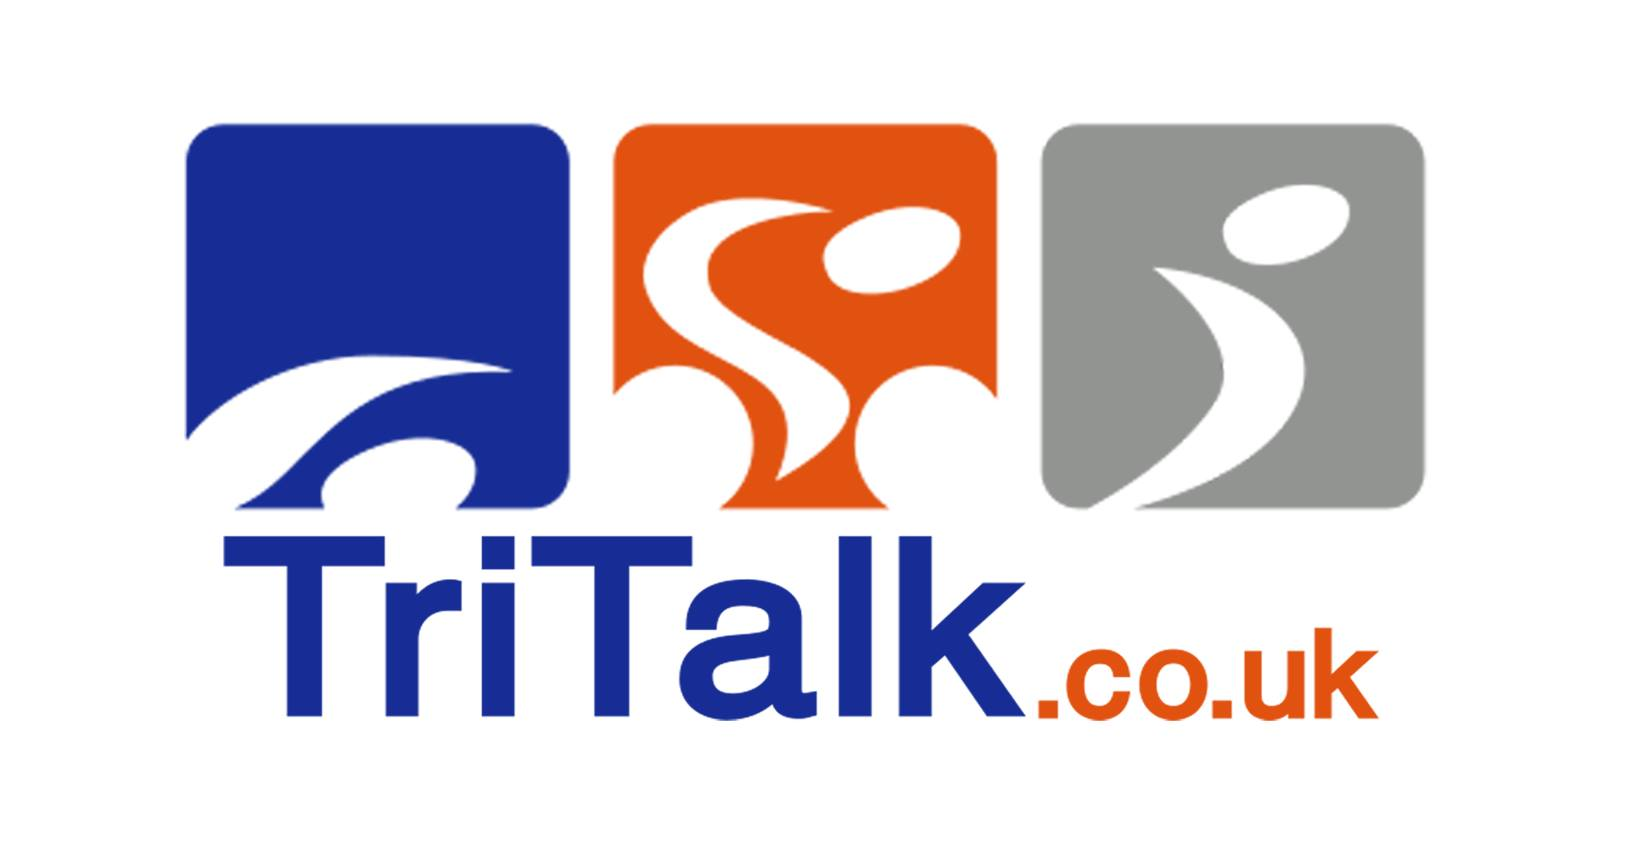 TriTalk.co.uk